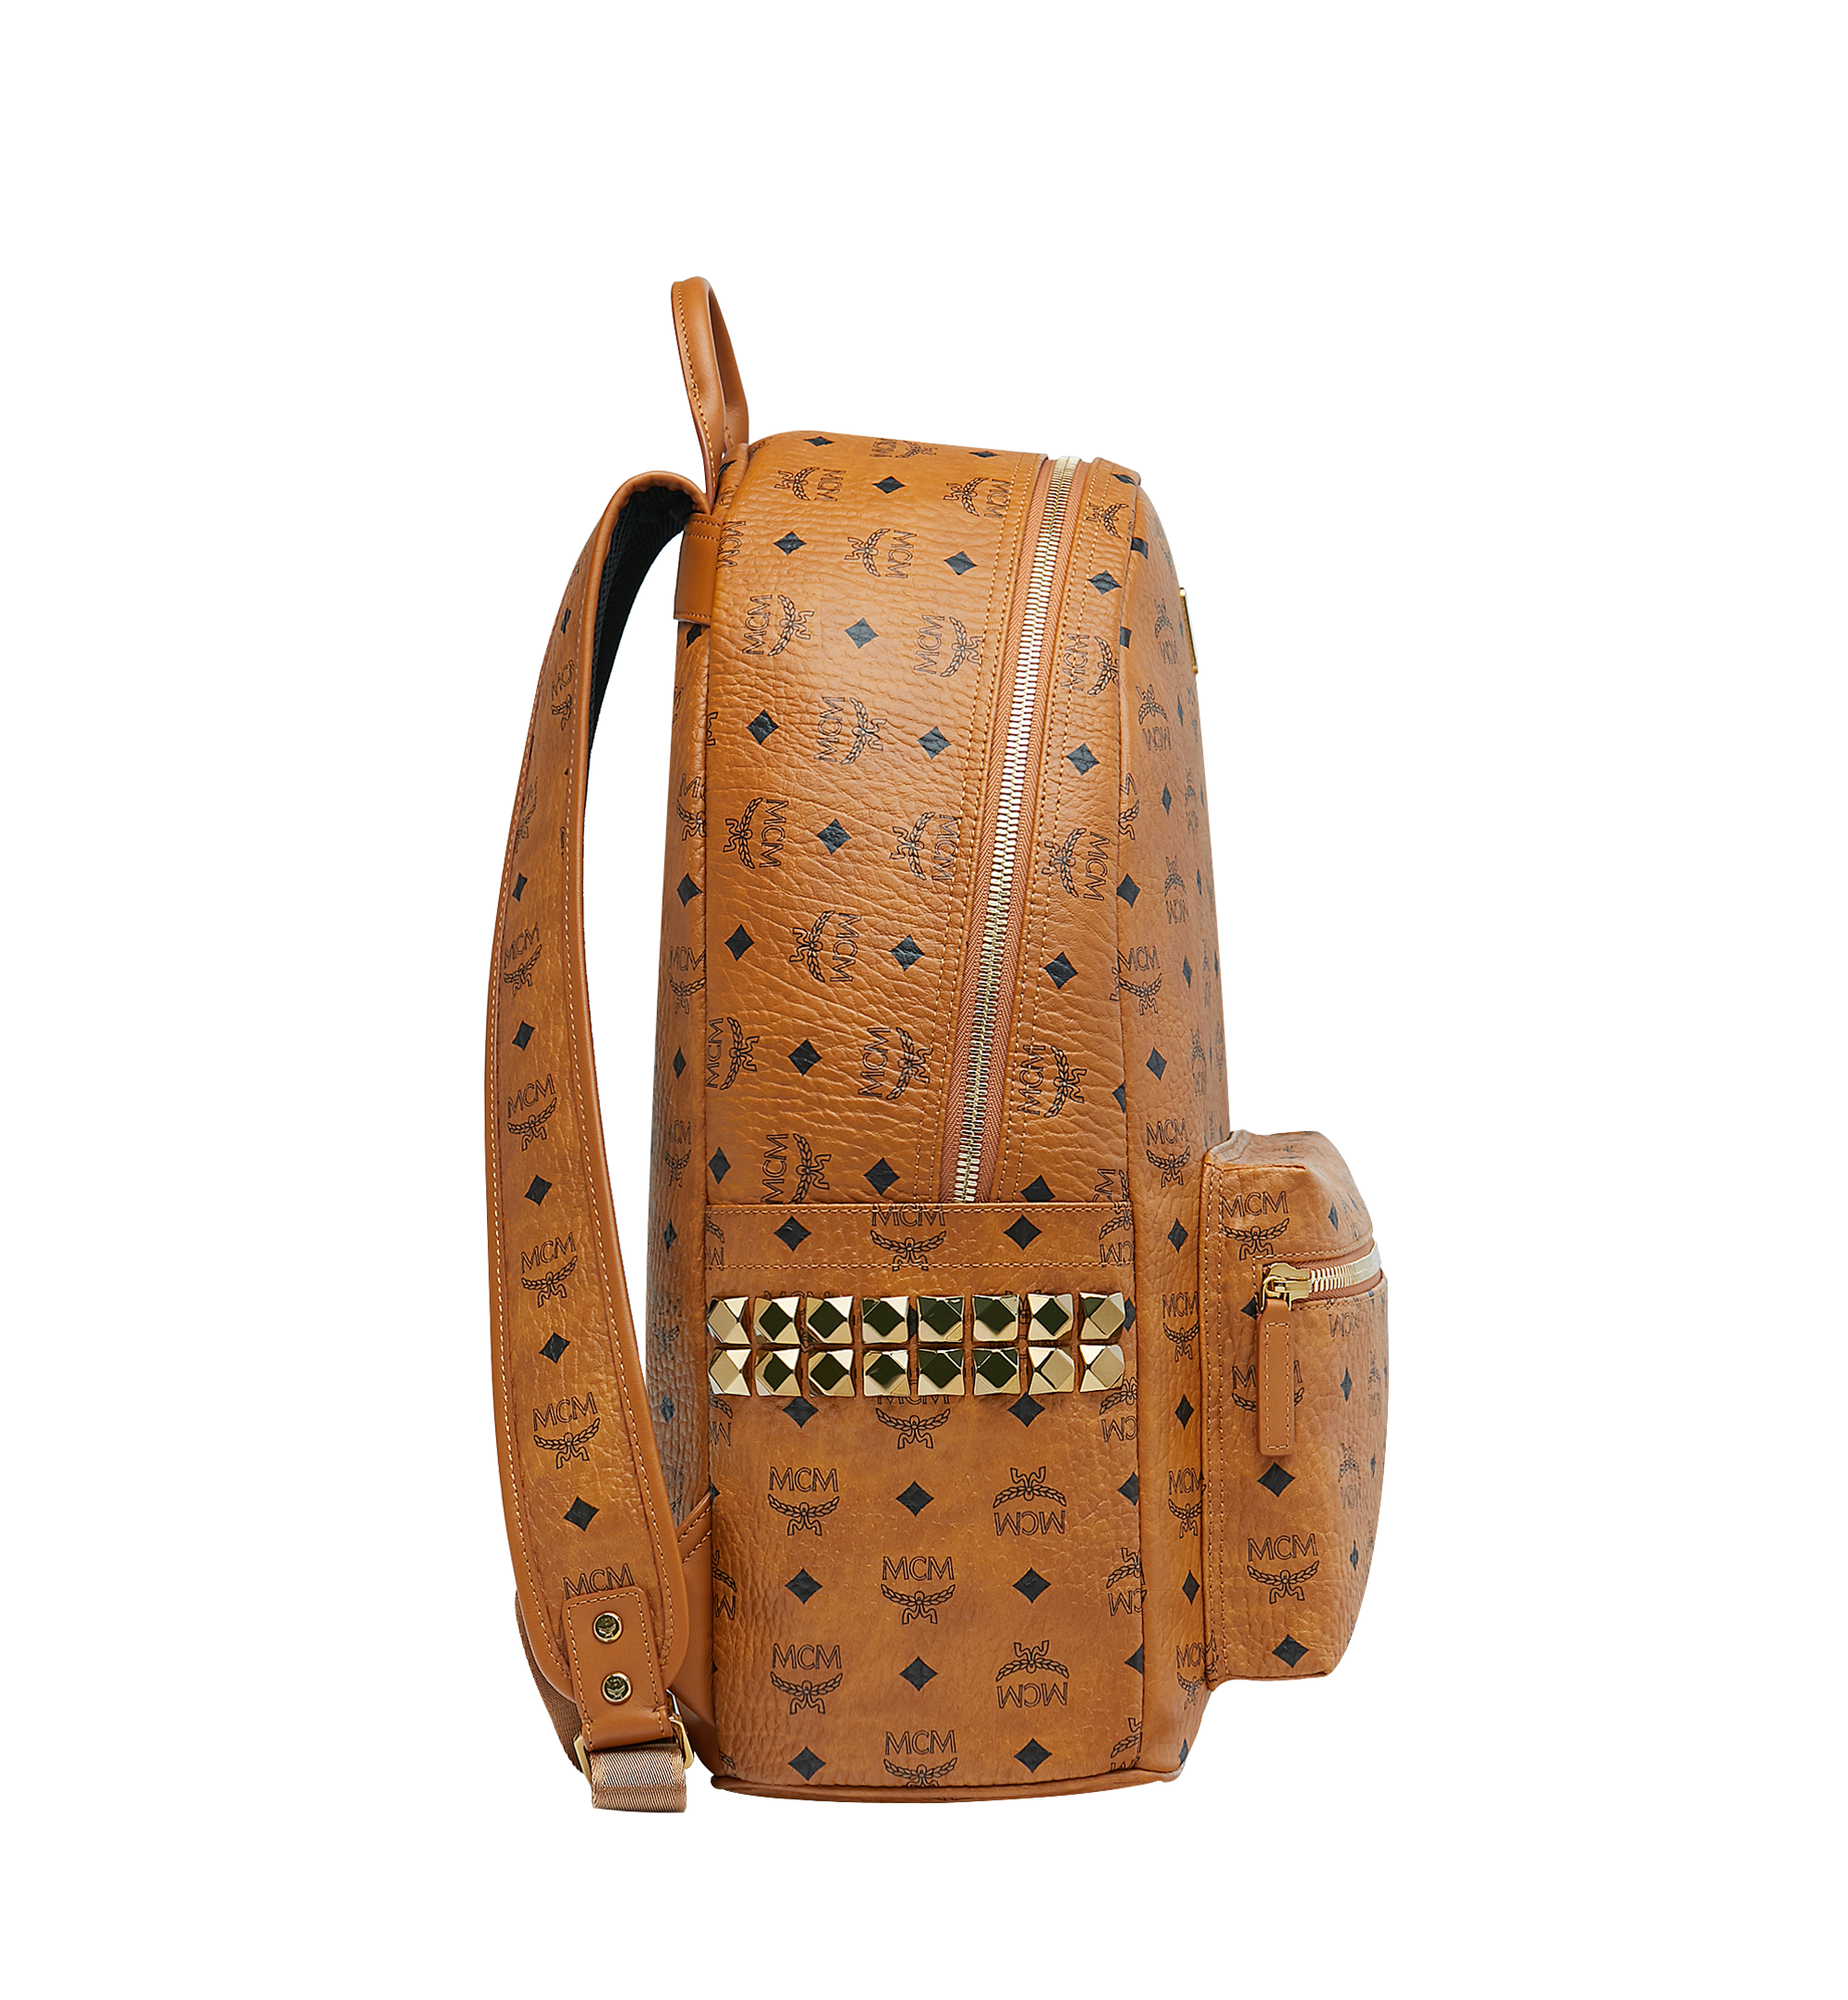 47 cm 18.5 in Stark Side Studs Rucksack in Visetos Cognac